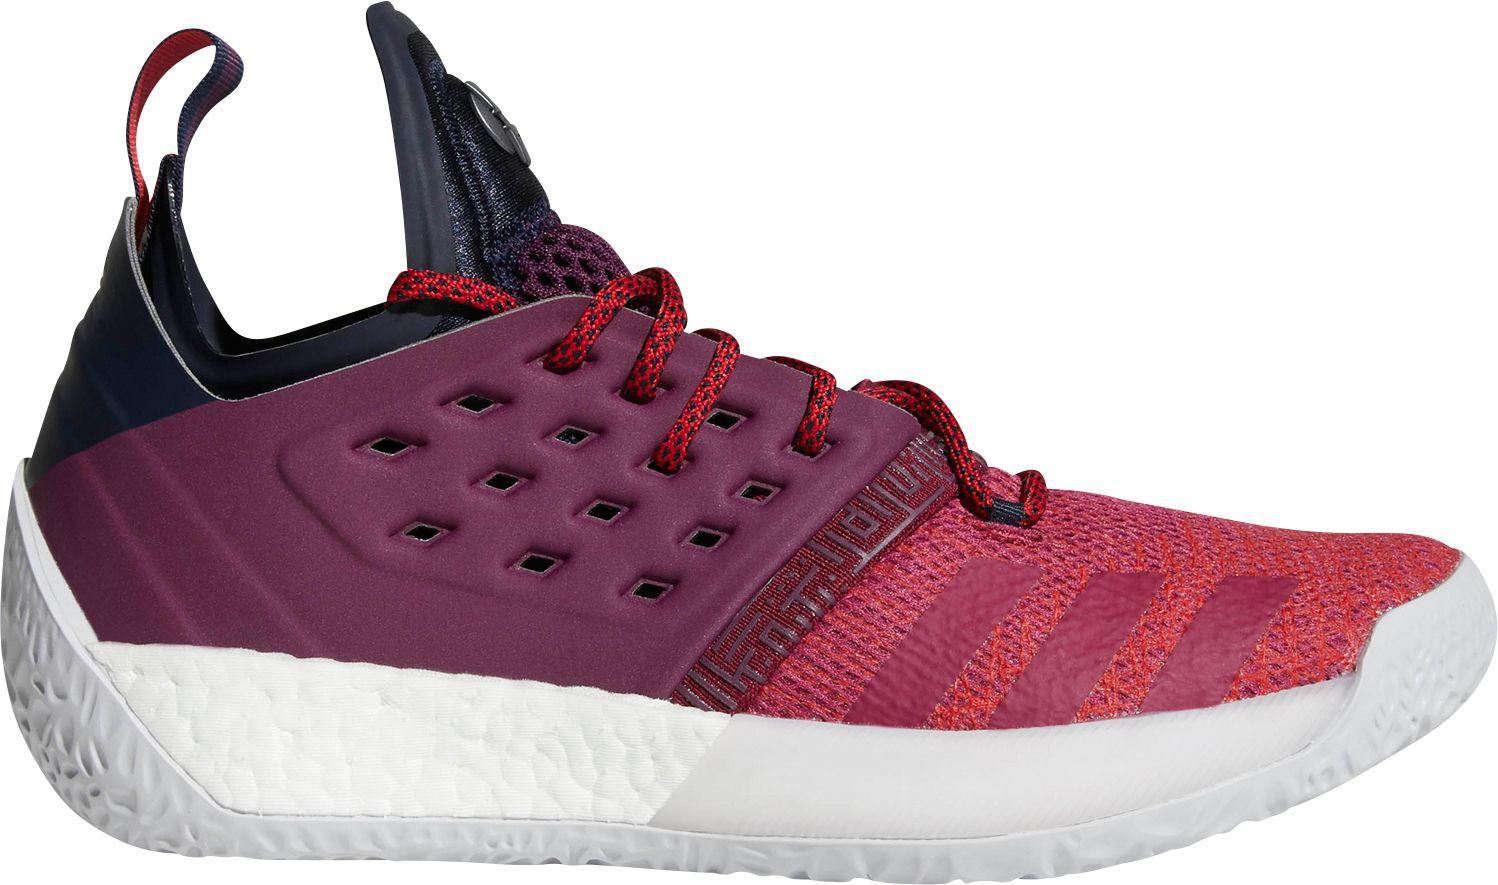 99d11fa315cf0f Adidas - Multicolor Harden Vol. 2 Basketball Shoes for Men - Lyst